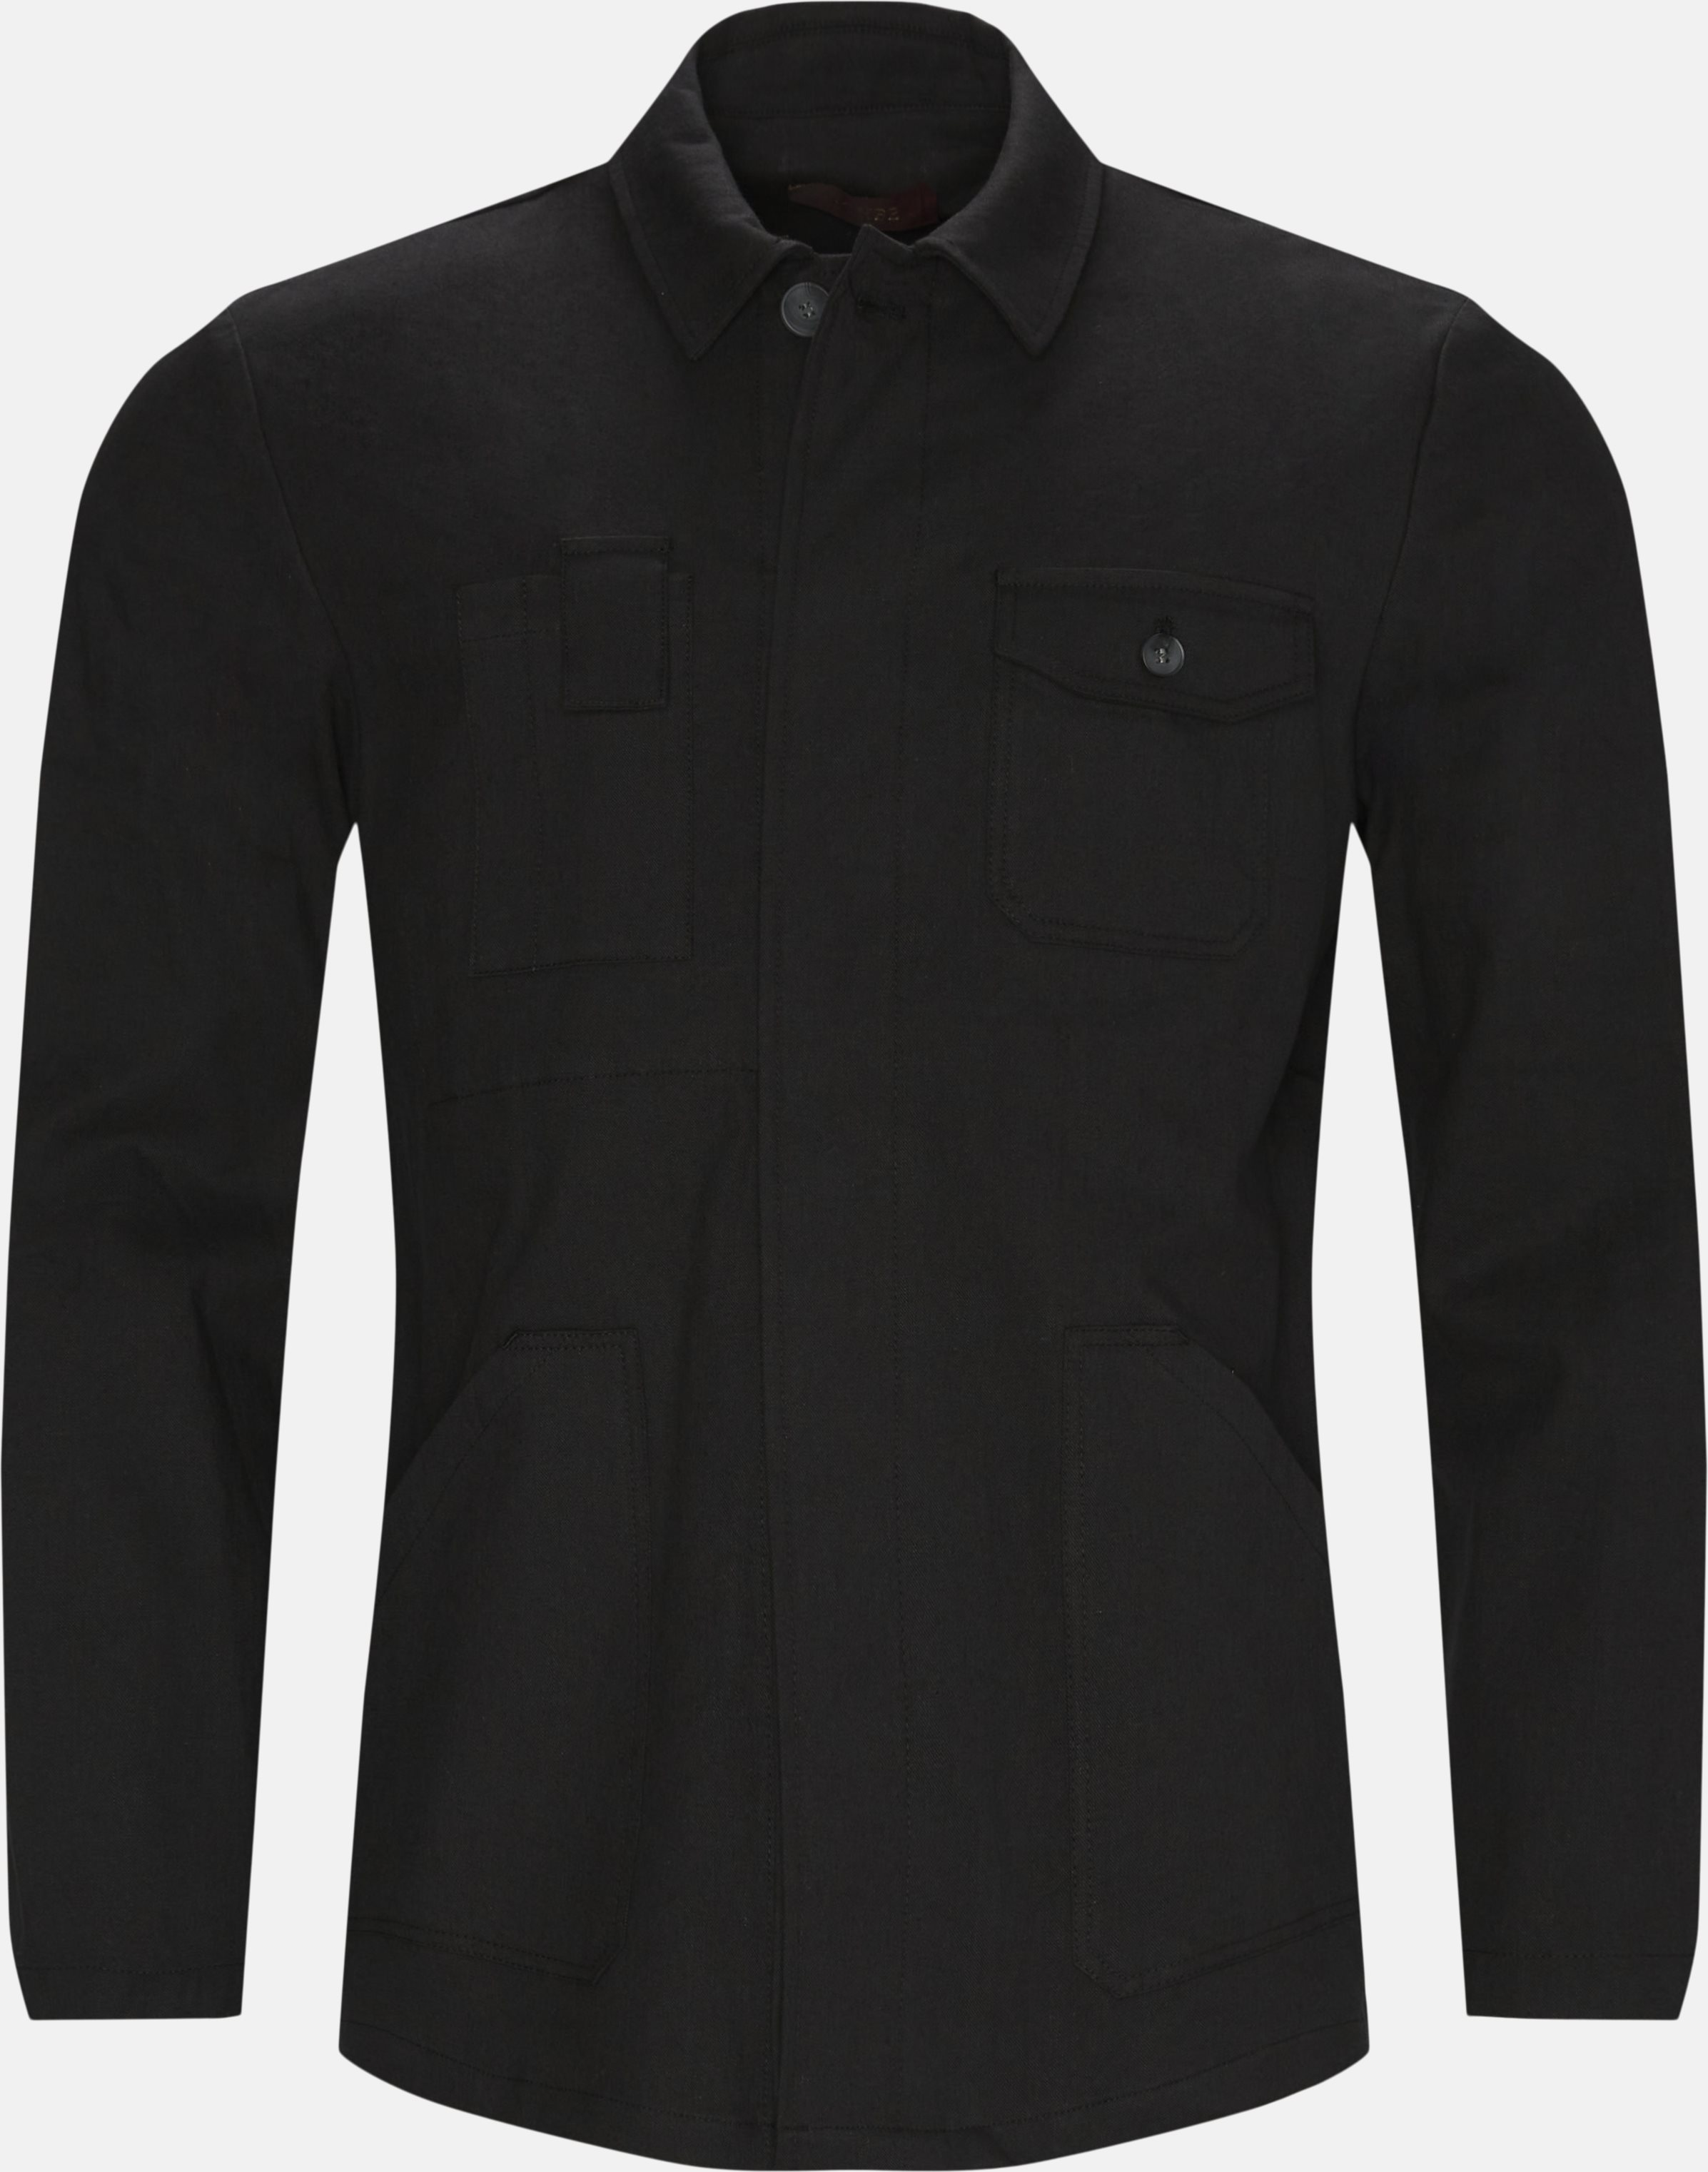 Overshirts - Regular - Black